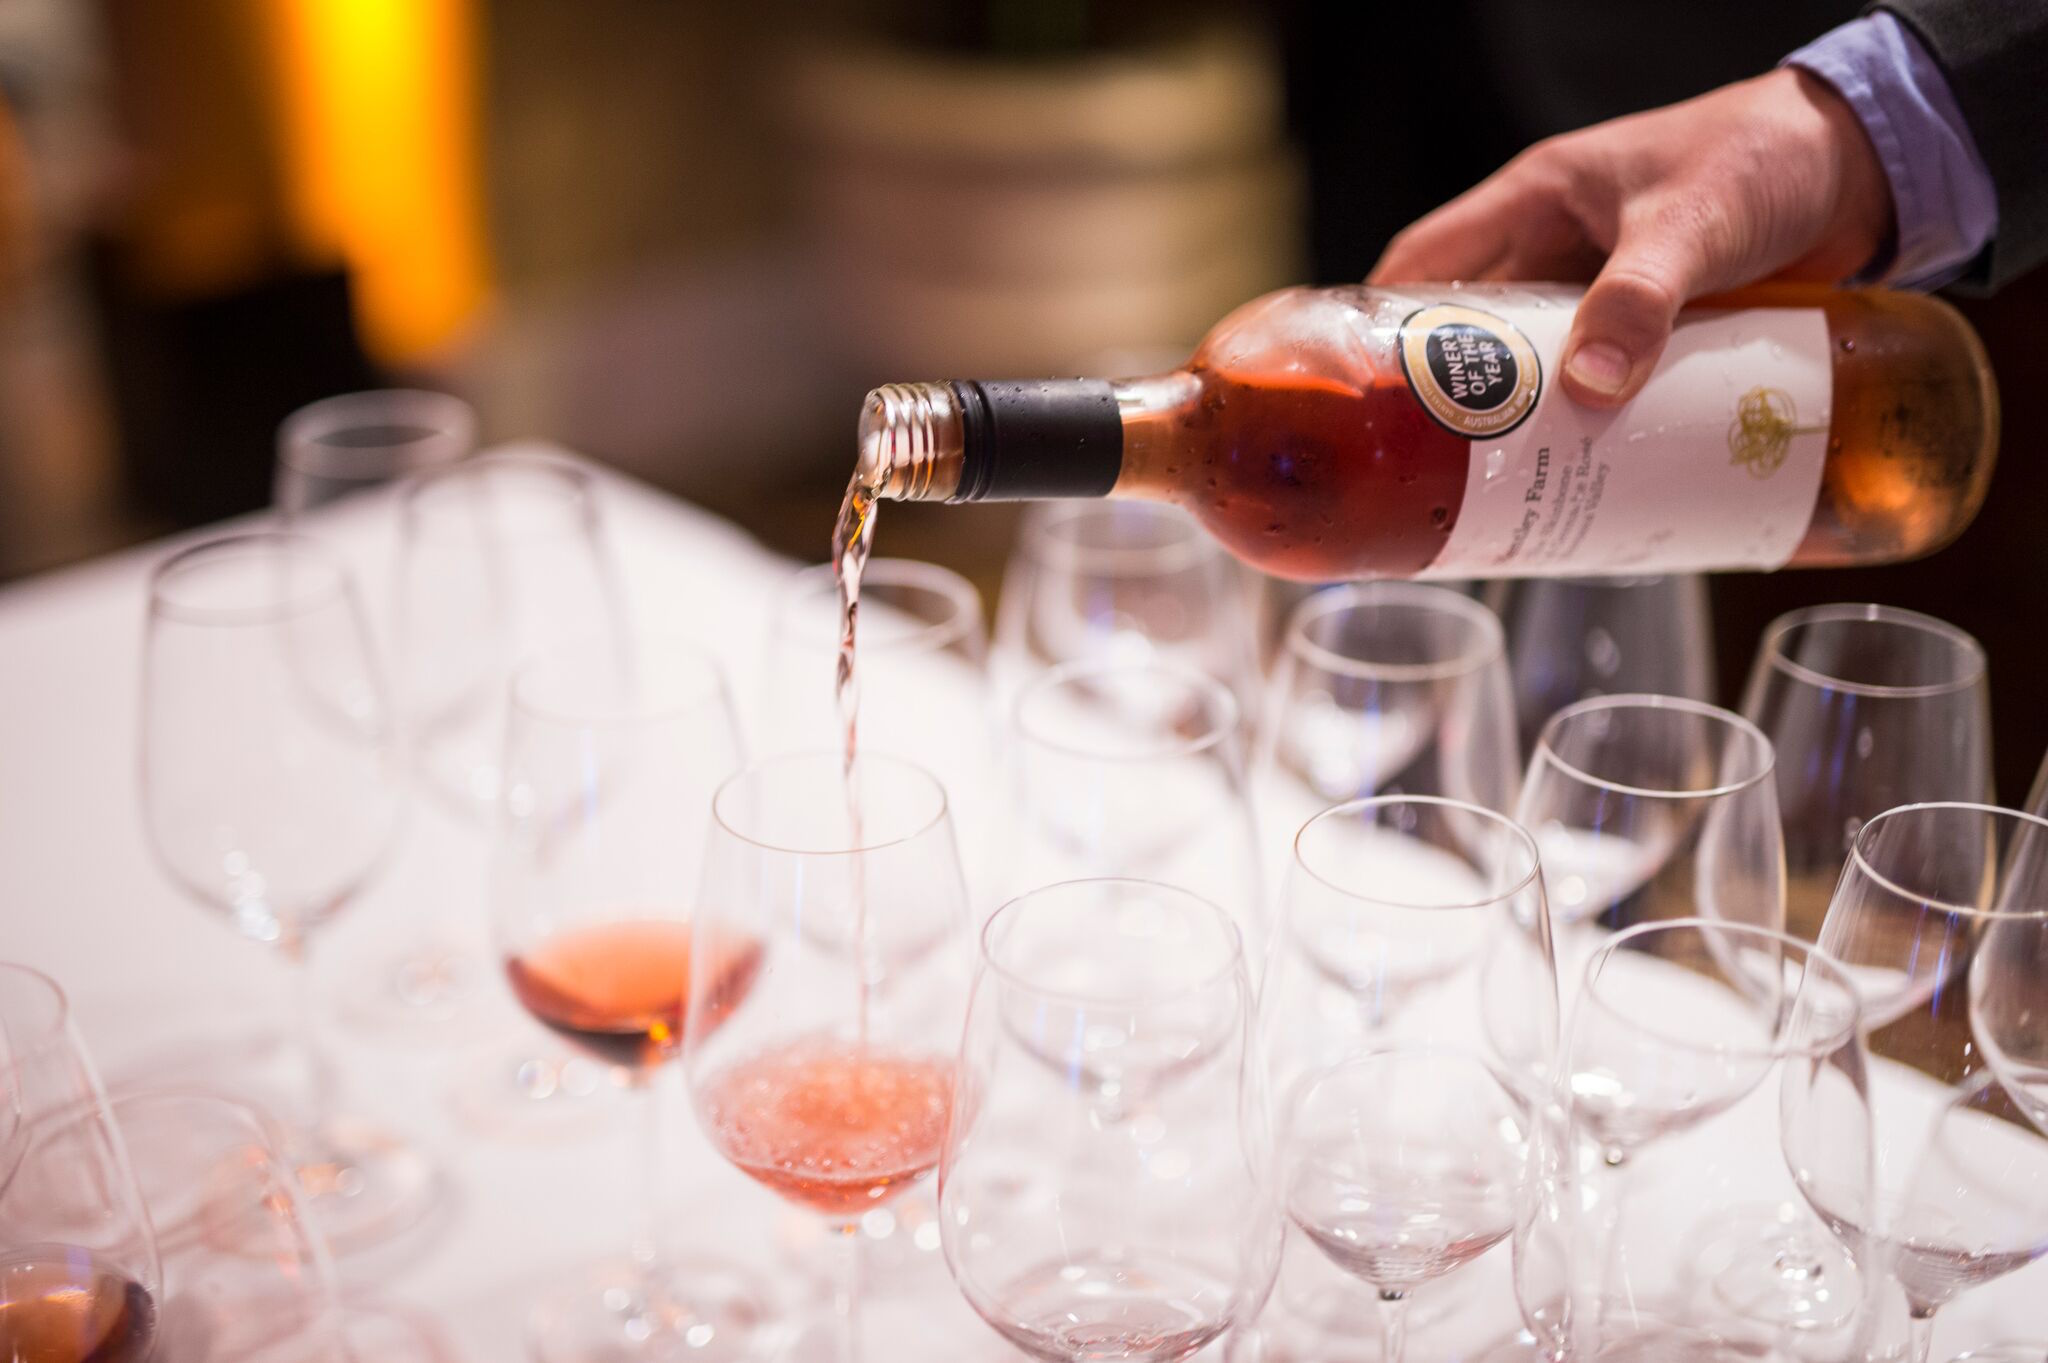 Rose flows at the Pebble Beach Food & Wine